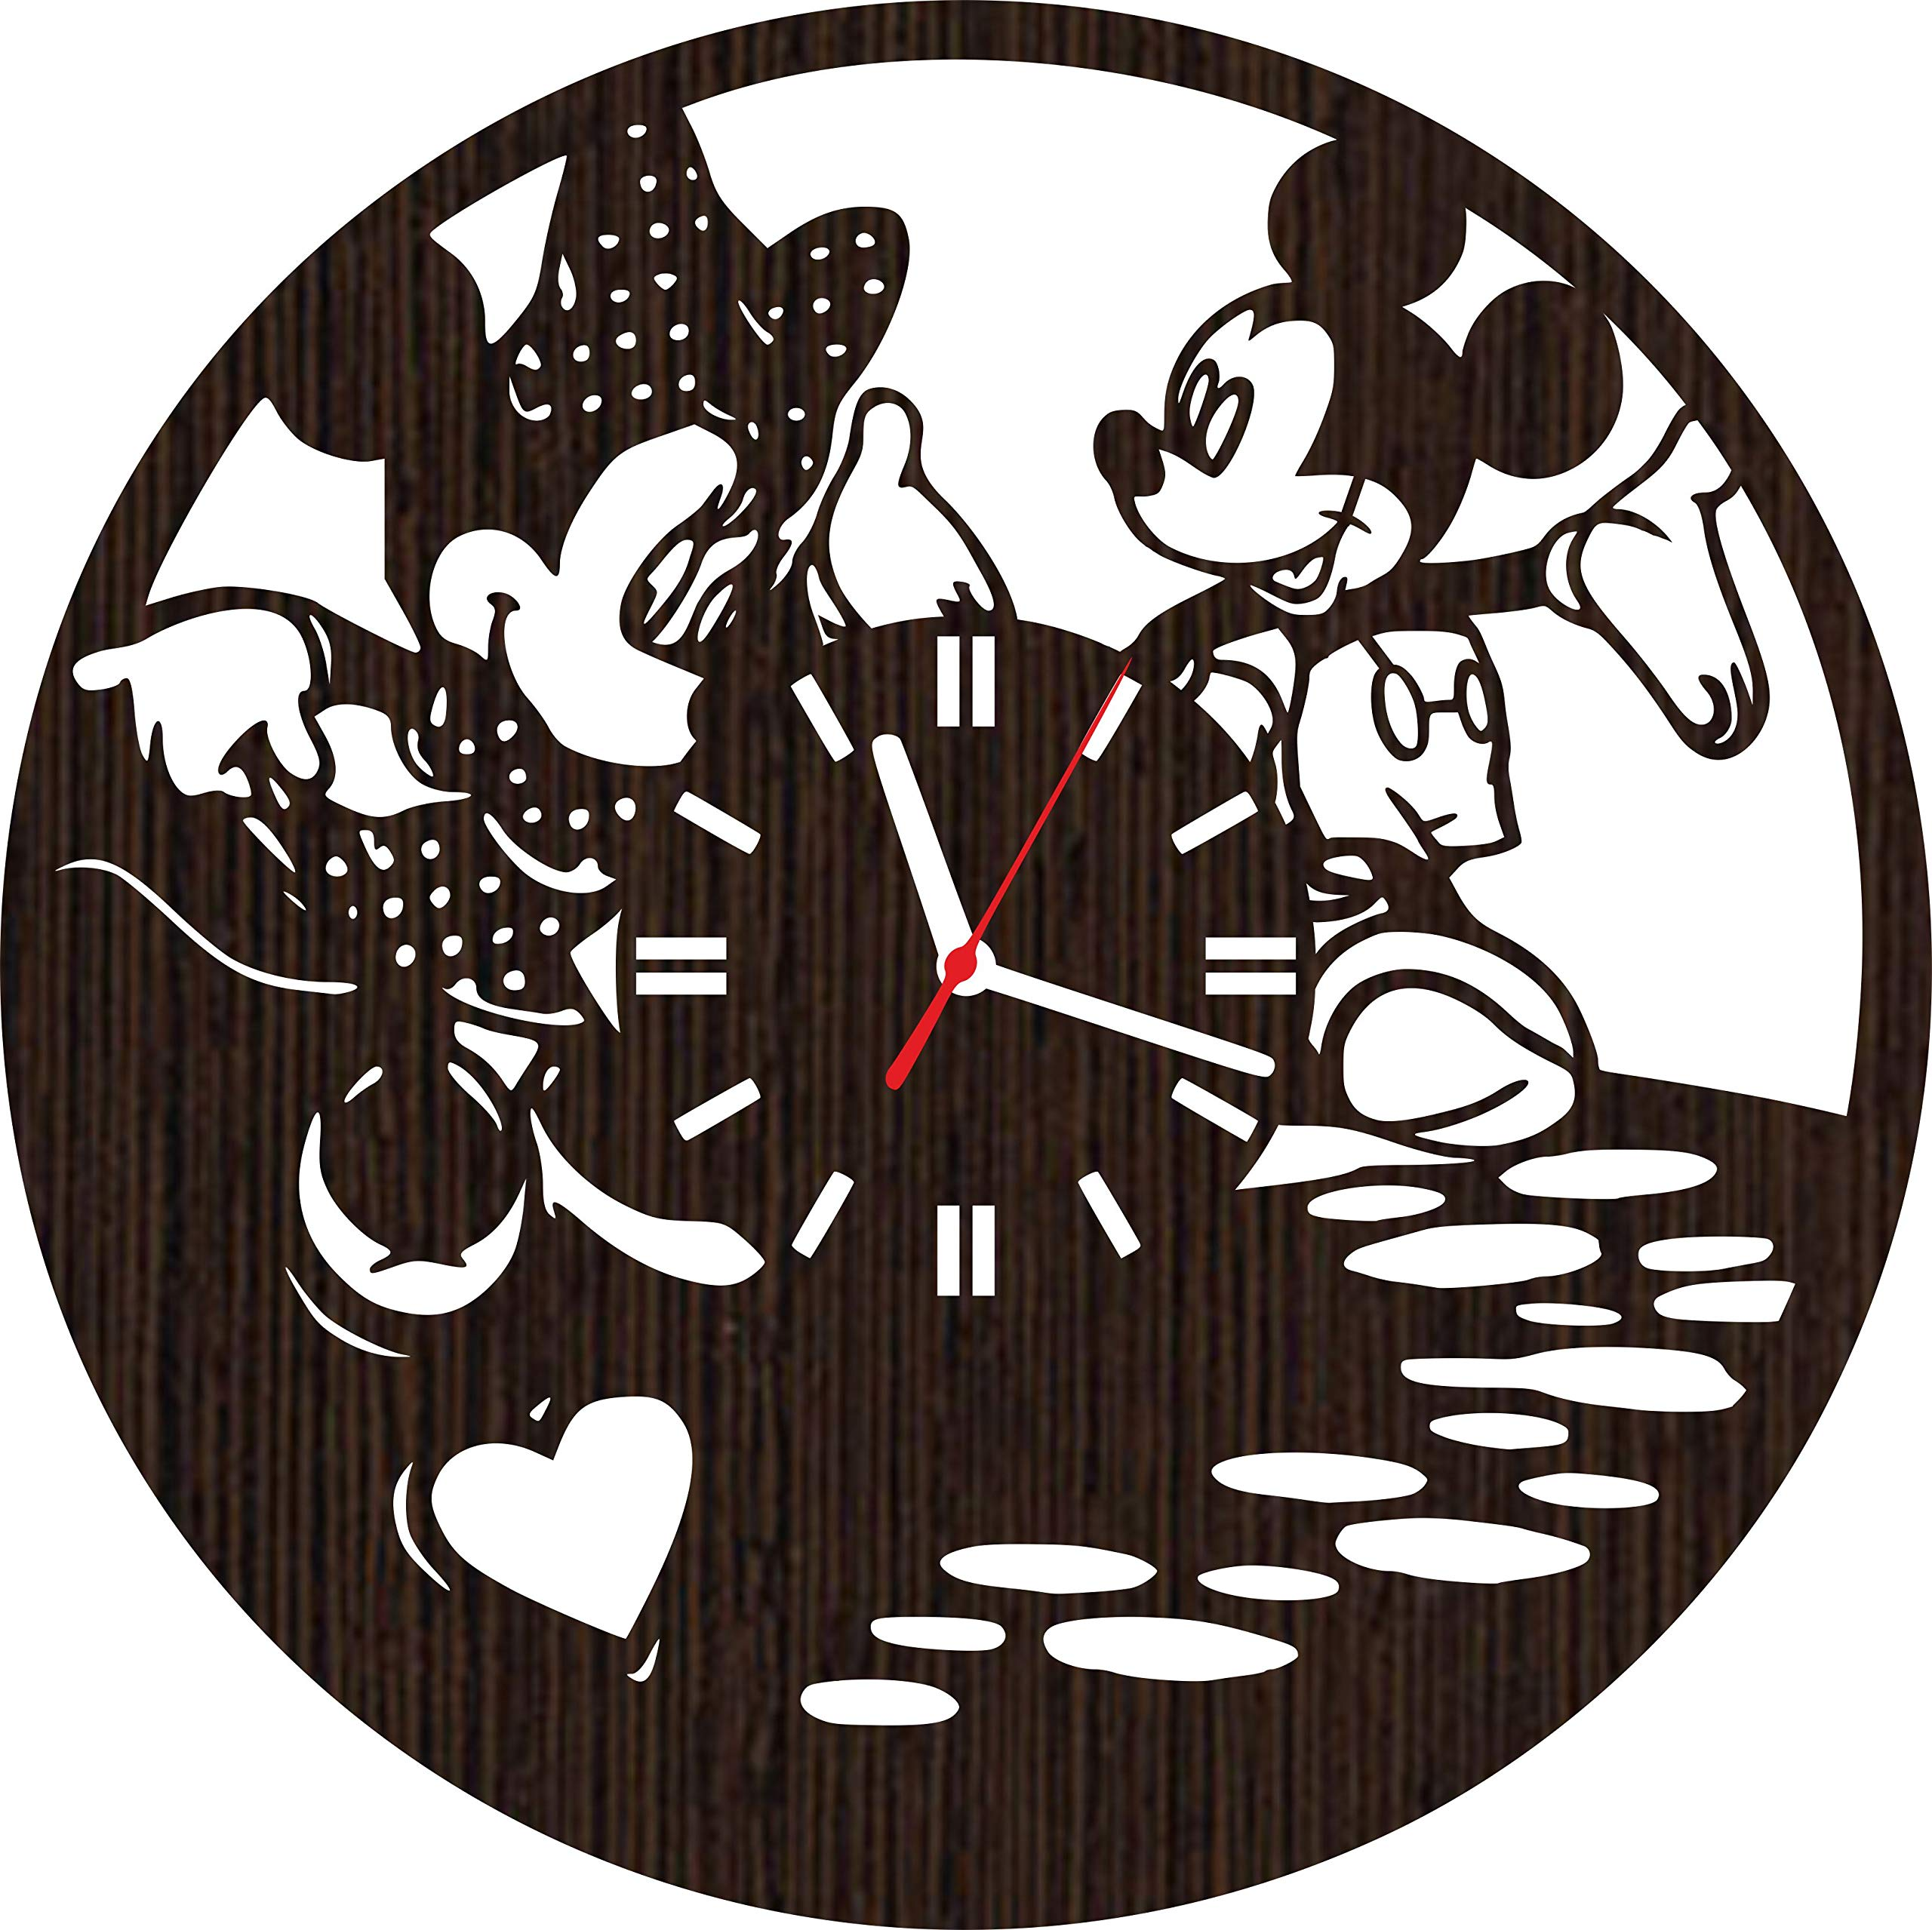 Handmade Wooden Wall Clock Mickey and Minnie Mouse Gifts for Kids Boys Girls Disney Fans | Nursery Decor | Birthday Party Decorations | Baby Room